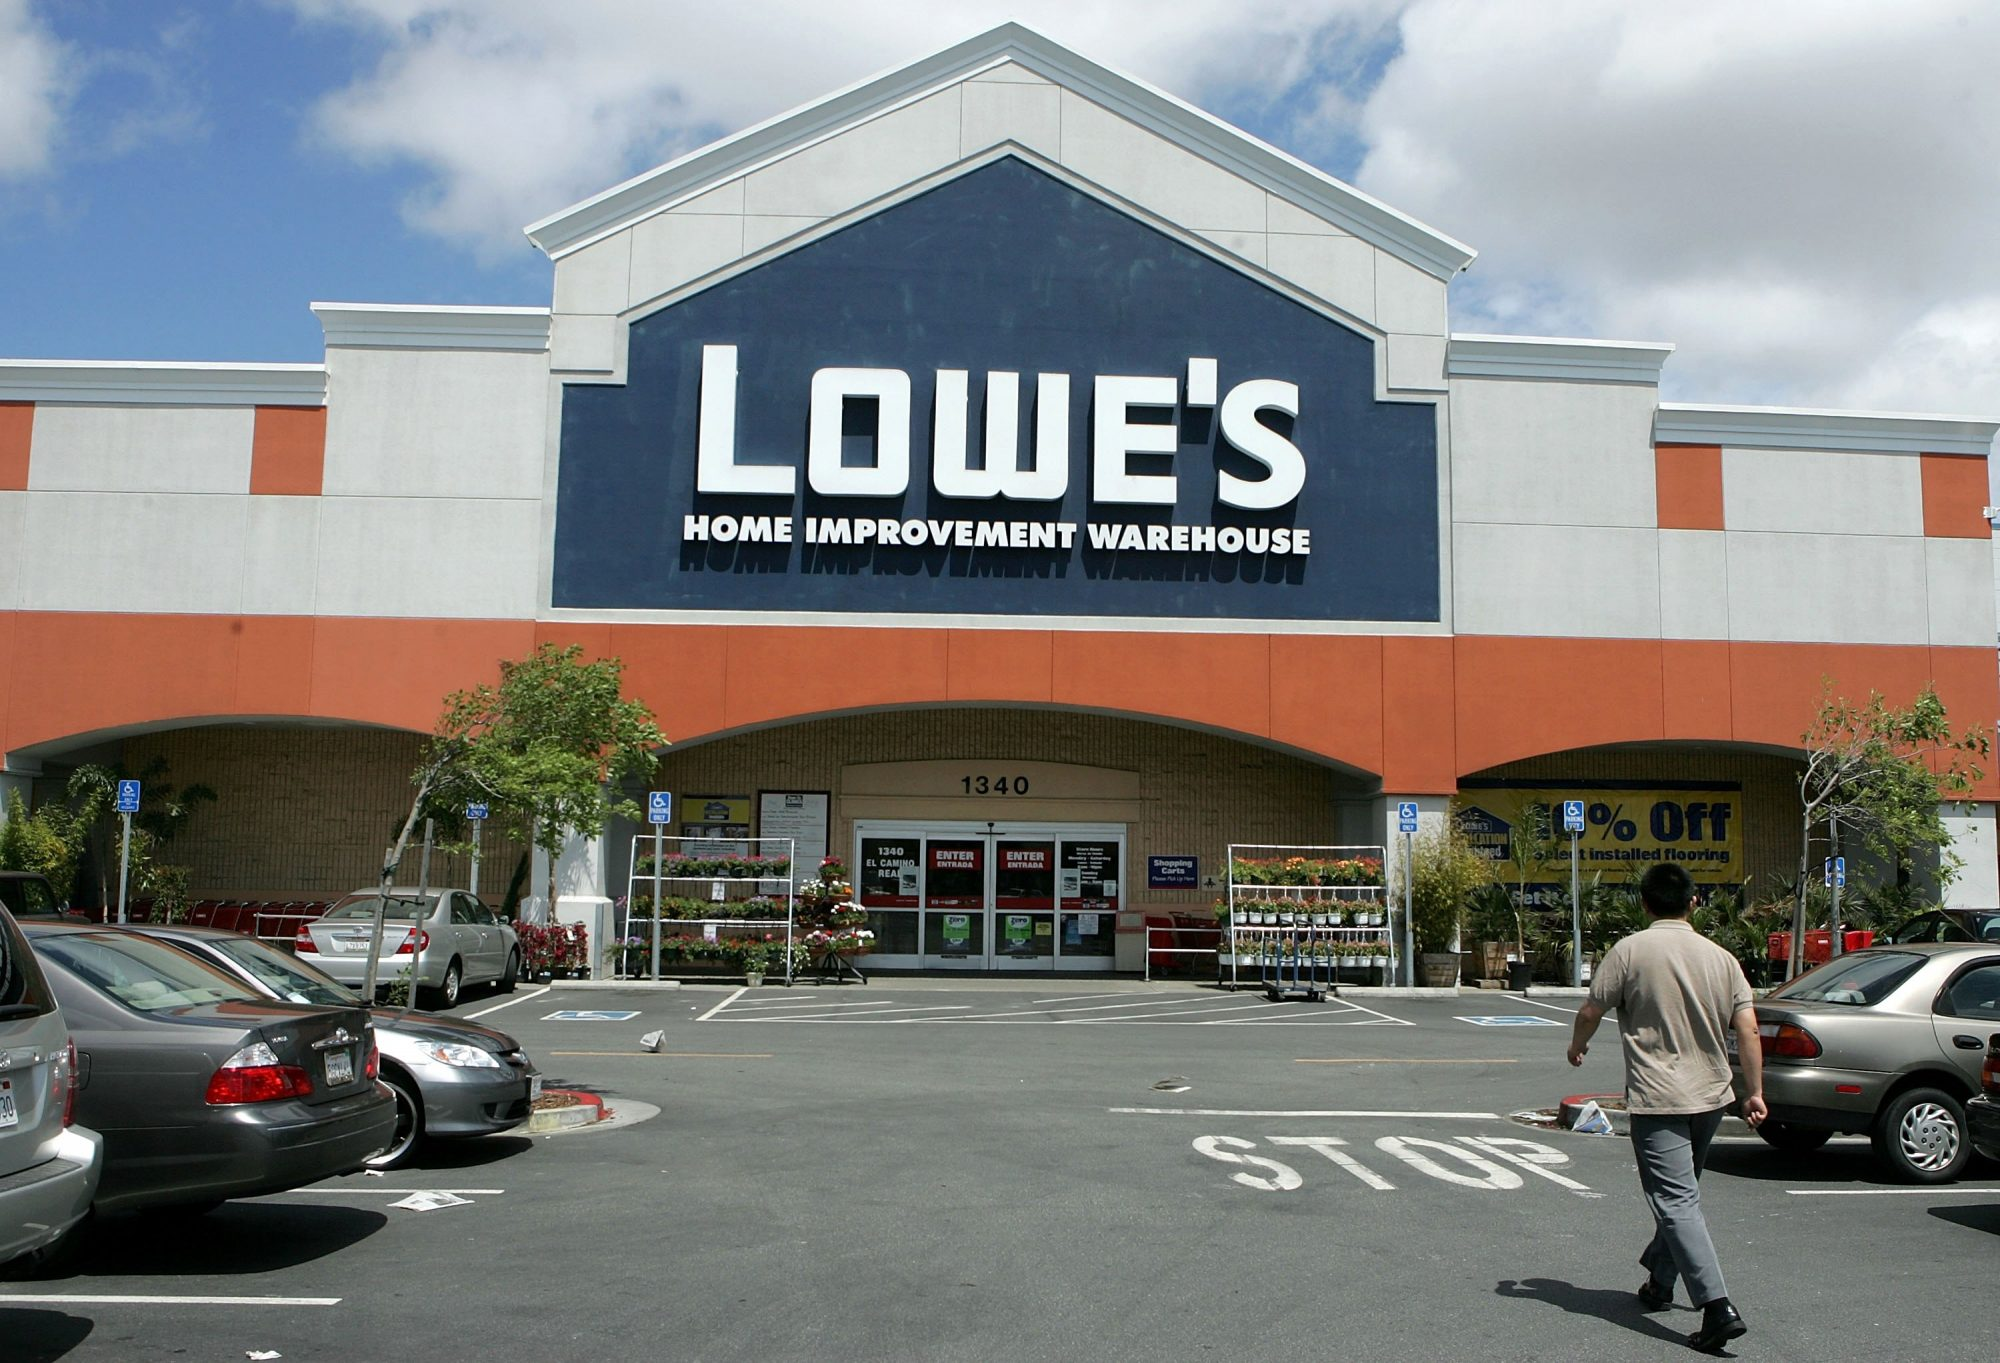 A Lowe's home improvement warehouse store is seen May 22, 2006 in San Bruno, California.